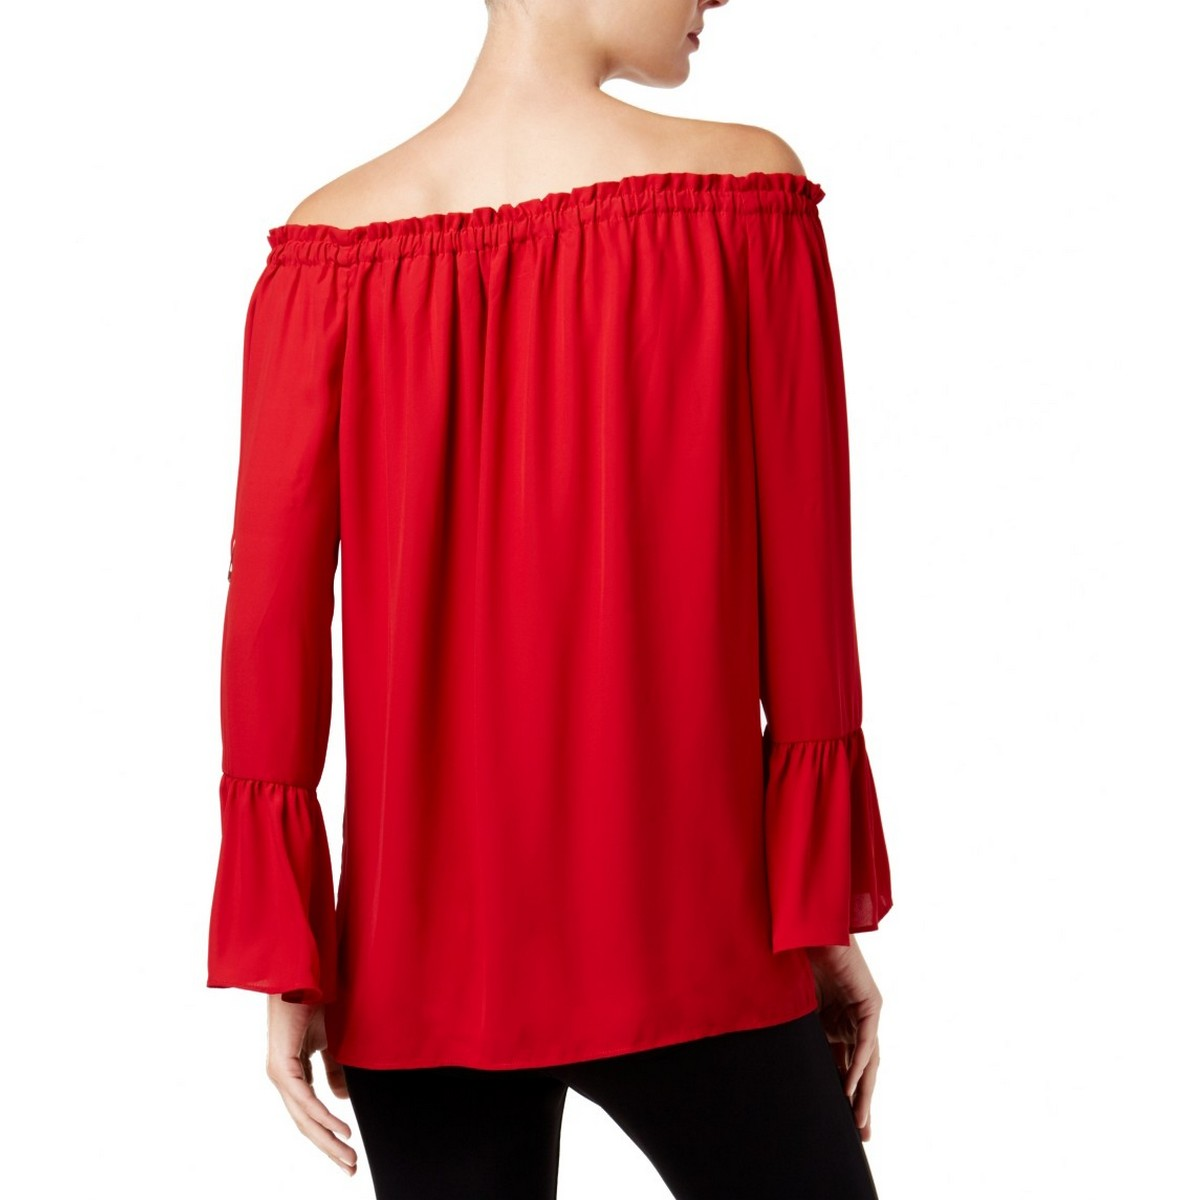 ALFANI-NEW-Women-039-s-Off-the-shoulder-Bell-sleeve-Blouse-Shirt-Top-TEDO thumbnail 6